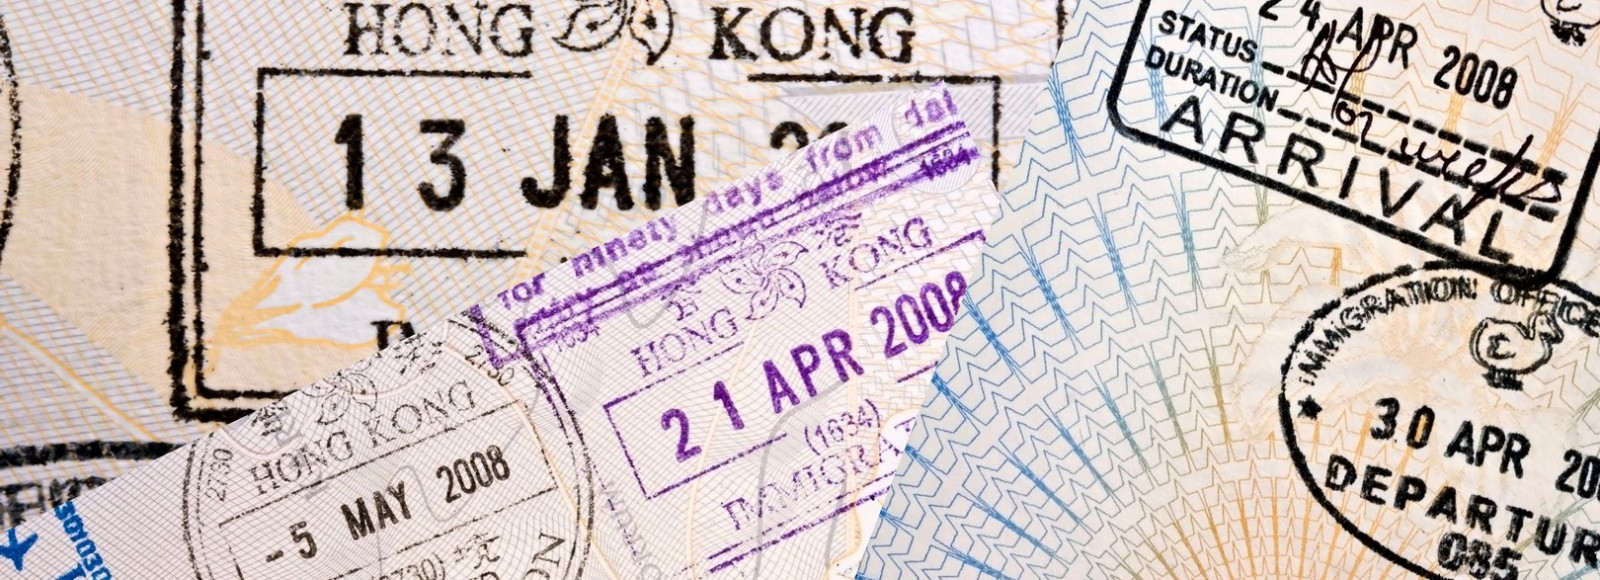 green card usa immigration stamps honk kong